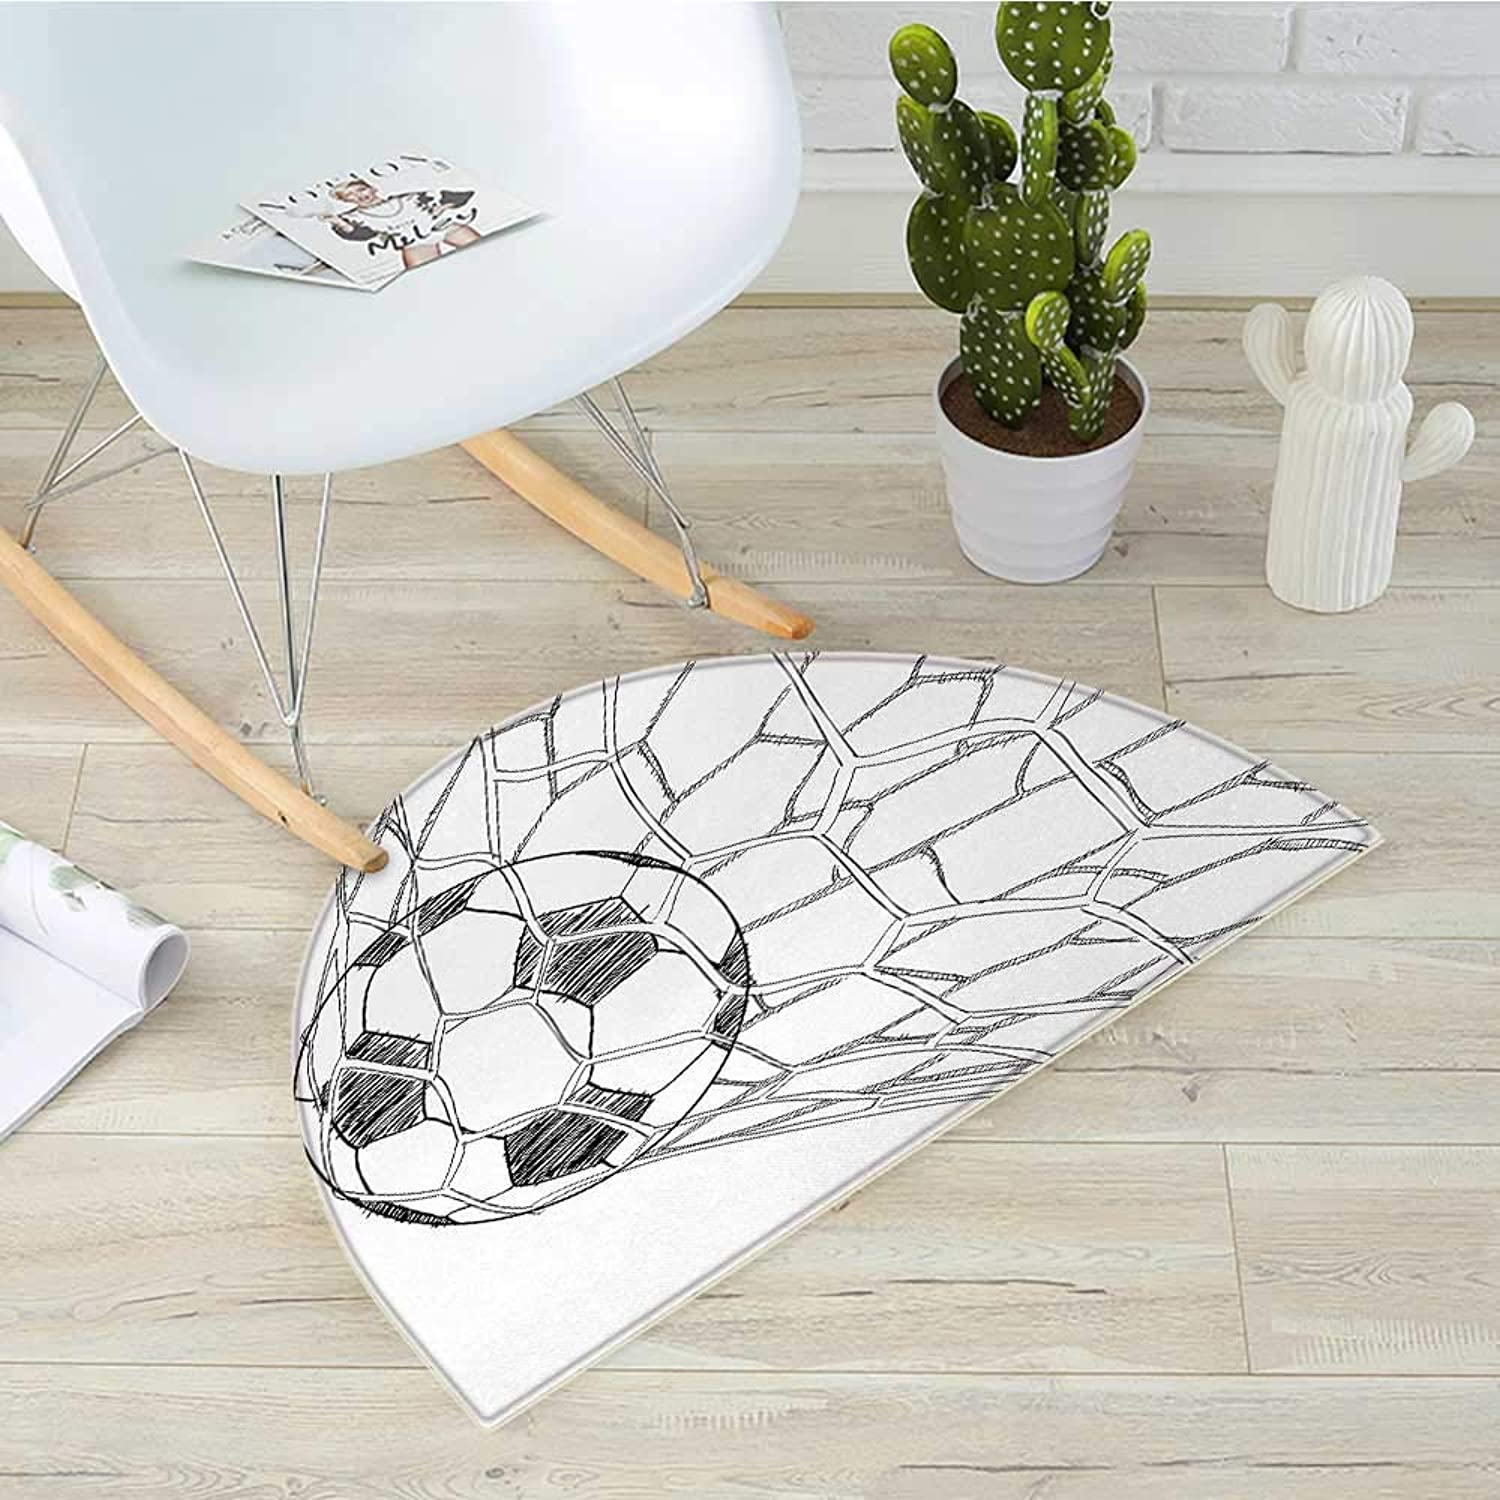 Soccer Semicircle Doormat Soccer Ball in Net Goaly Position Sports Competition Spectators Hand Drawn Style Halfmoon doormats H 39.3  xD 59  Black White